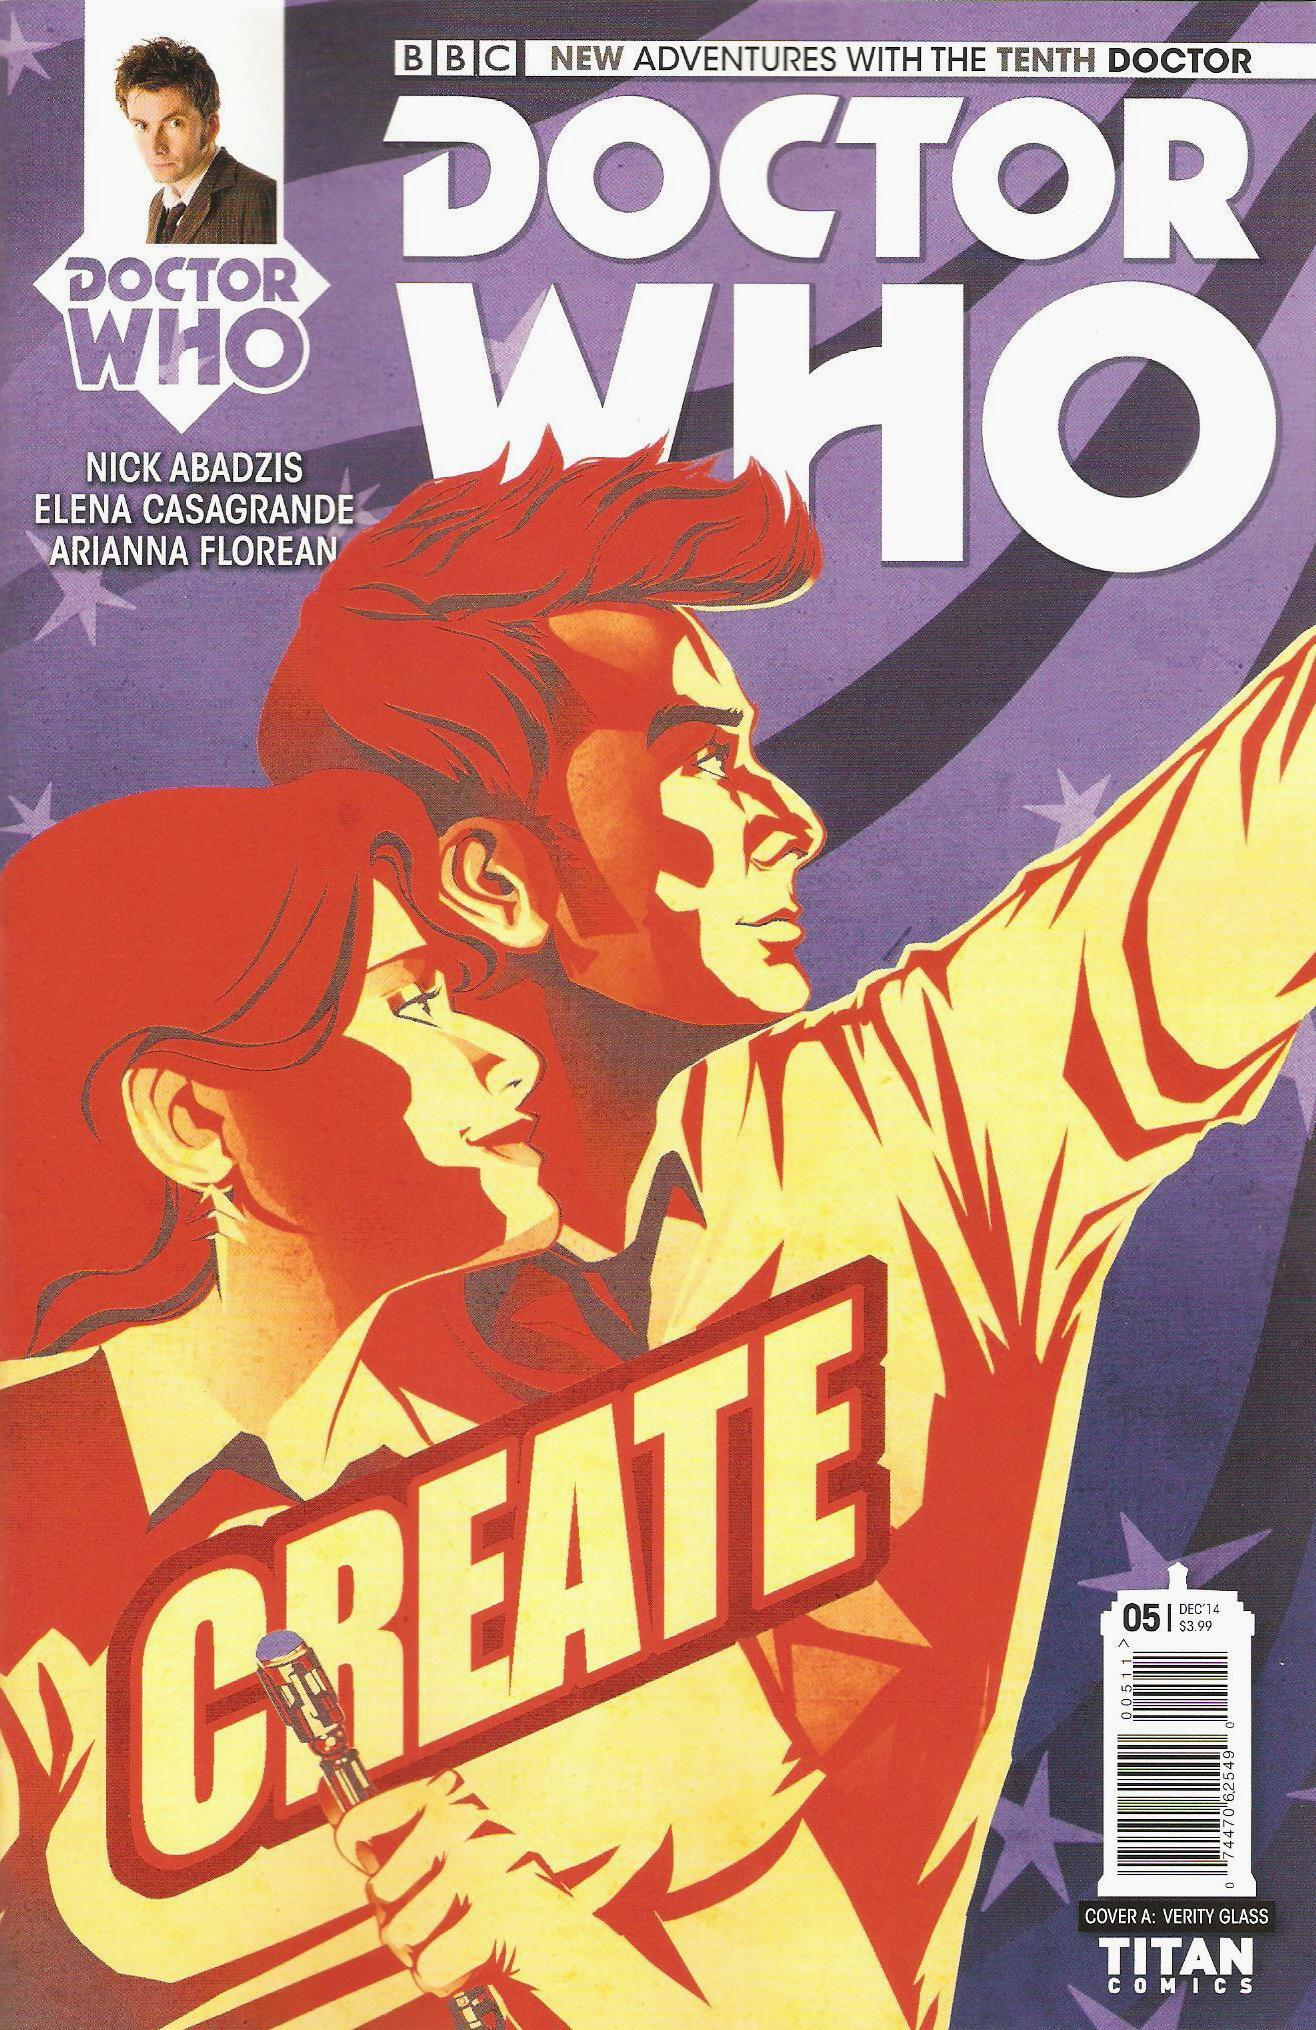 Tenth doctor issue 5a